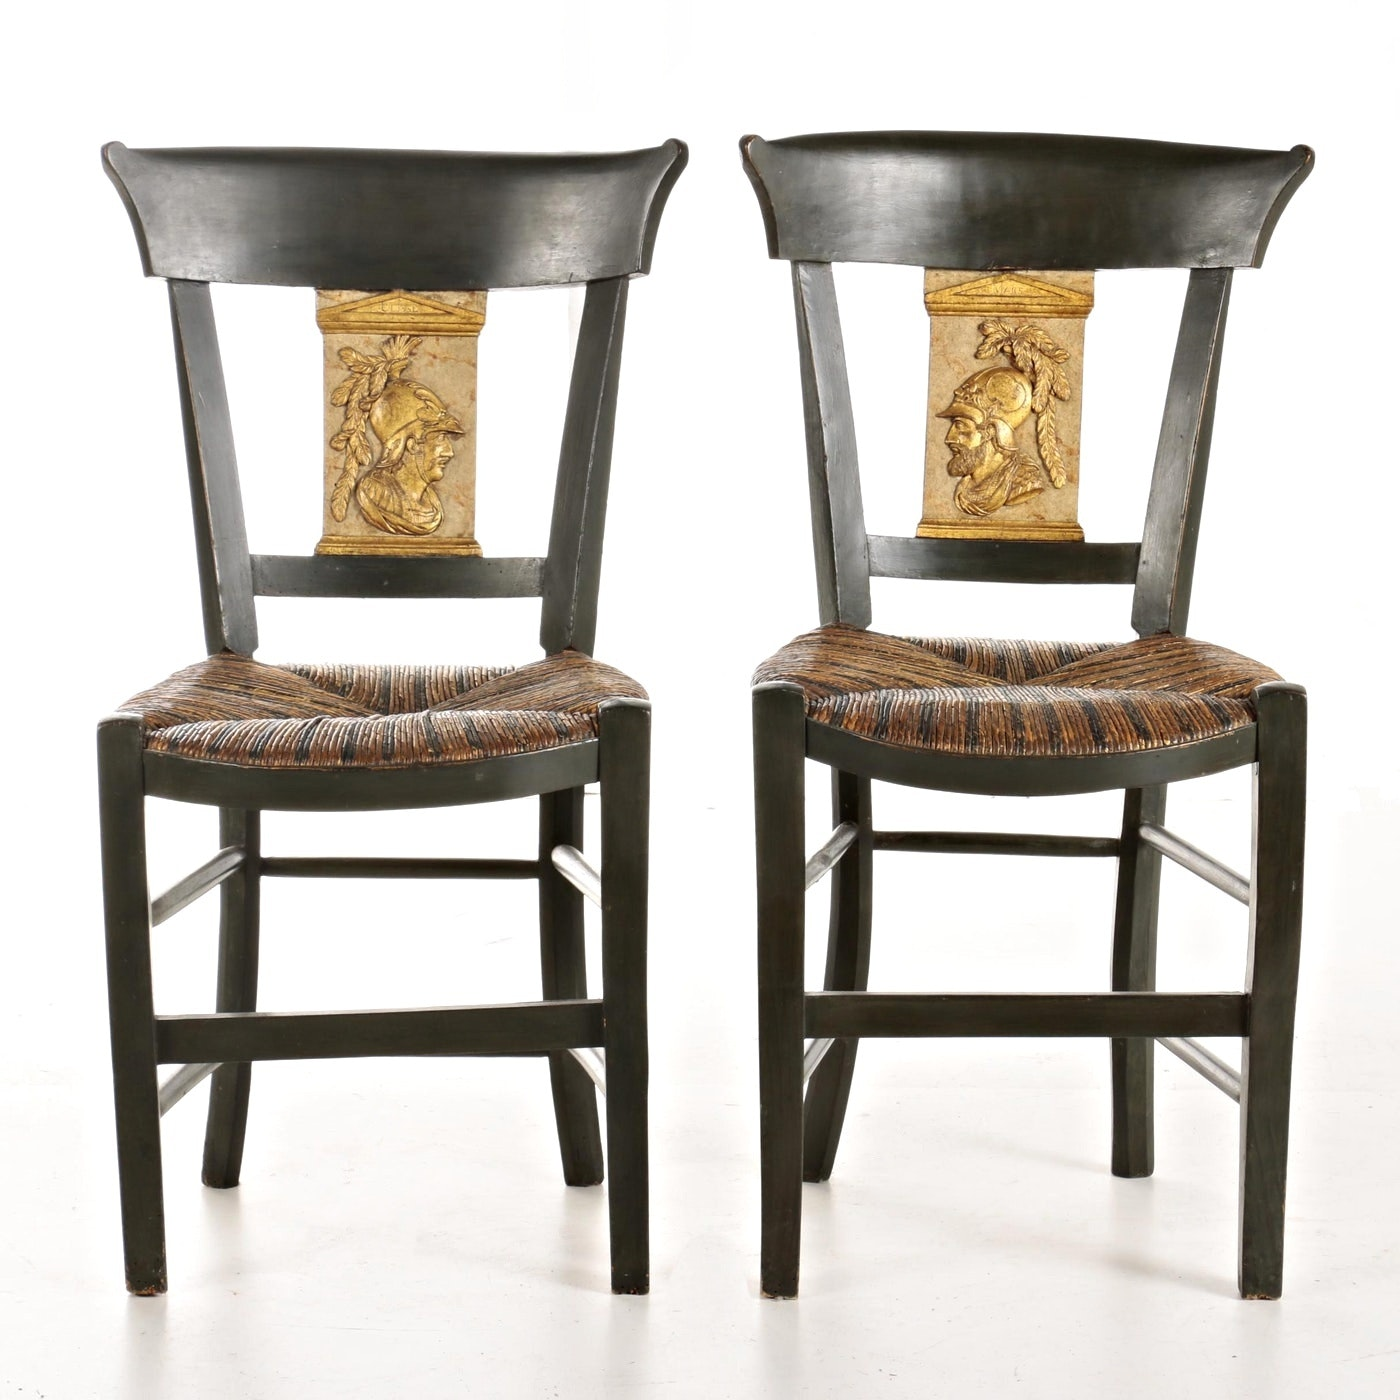 Pair of Directoire Style Parcel-Gilt and Painted Side Chairs, 20th Century